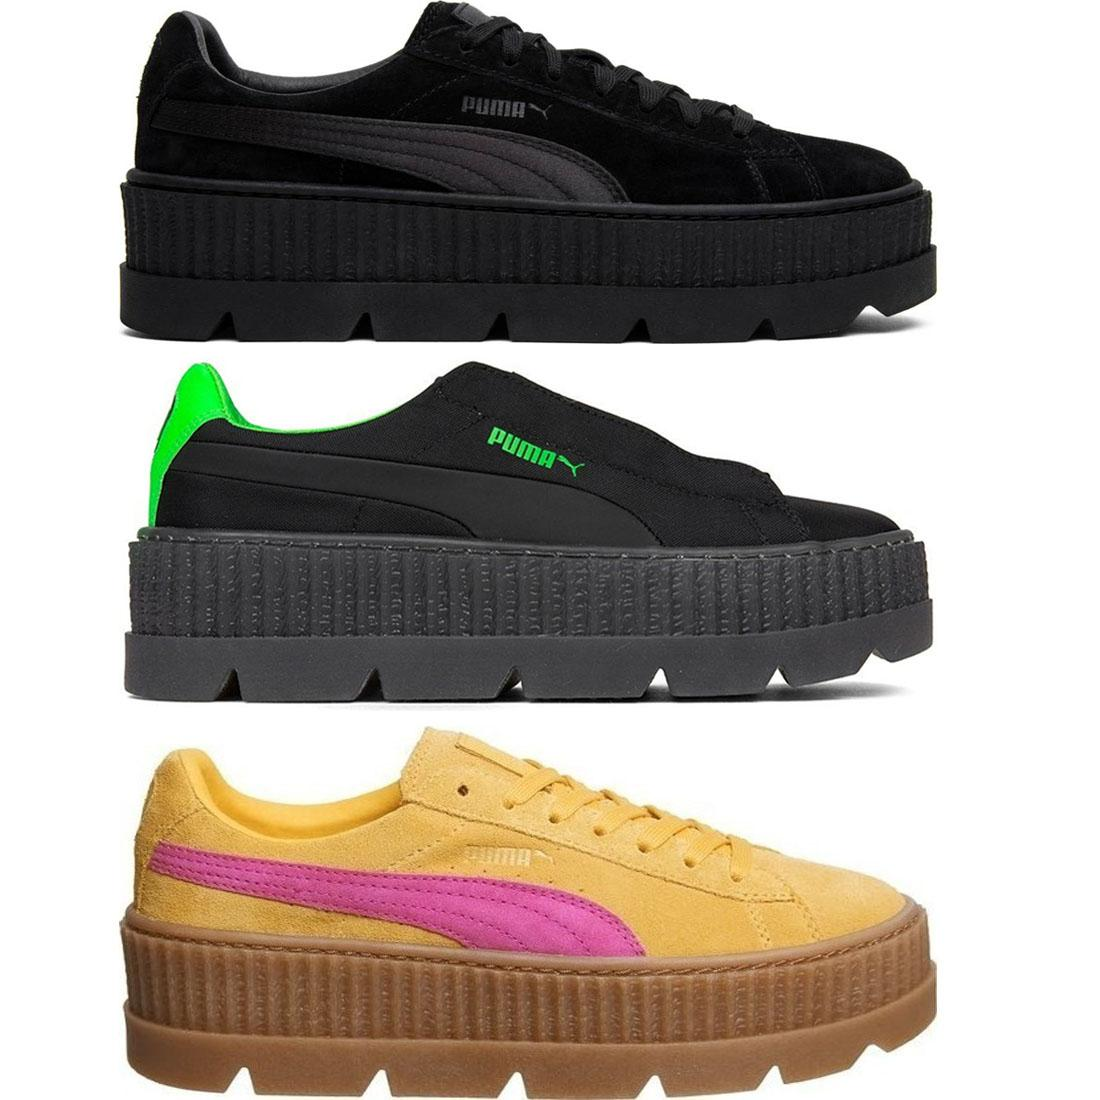 buy popular dcdd7 59178 Details about PUMA Fenty X Rihanna Cleated Creeper Ladies Suede Black Green  Yellow Trainers